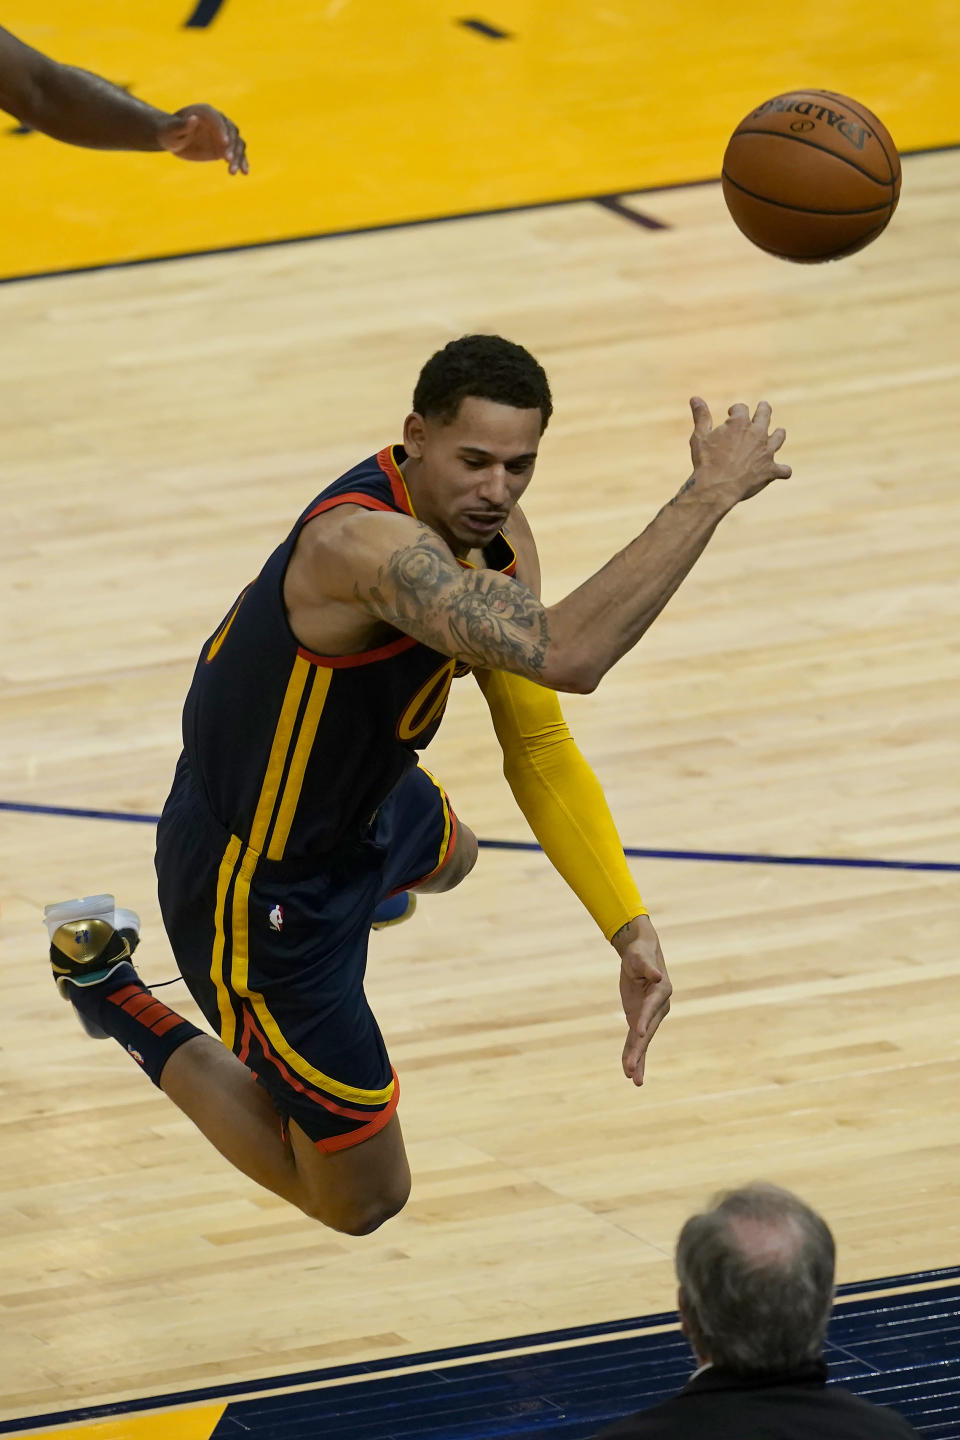 Golden State Warriors forward Juan Toscano-Anderson saves a ball from going out of bounds during the second half of an NBA basketball game against the Oklahoma City Thunder in San Francisco, Thursday, May 6, 2021. (AP Photo/Jeff Chiu)